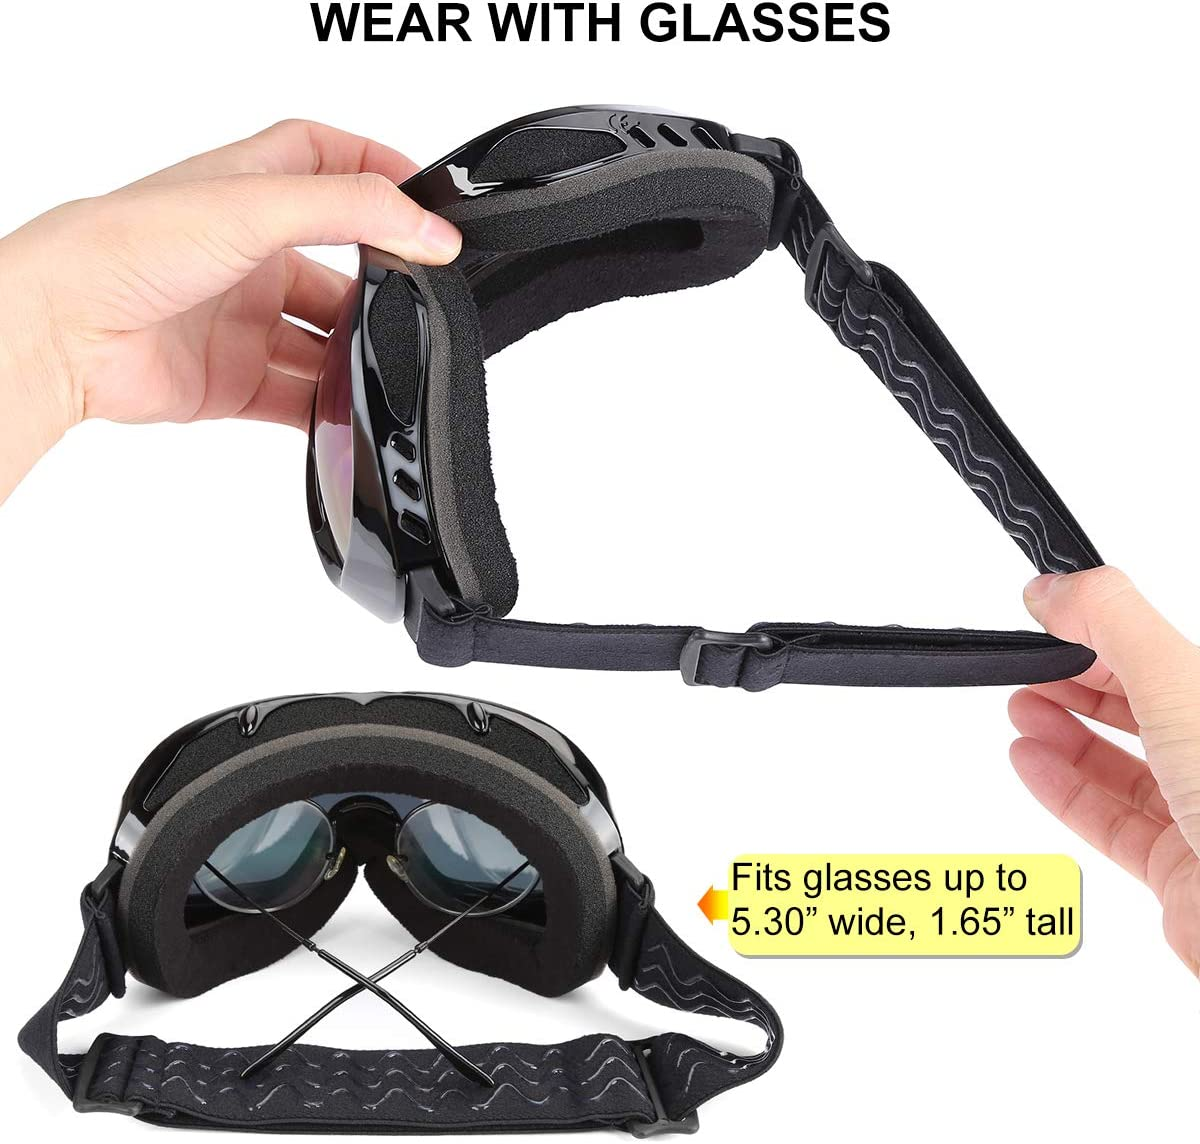 Kungber Ski Goggles,Winter Snow Sports Snowboard Over Glasses Goggles with Anti-Fog UV Protection Double Lens for Men Women Youth Snowmobile Skiing Skating